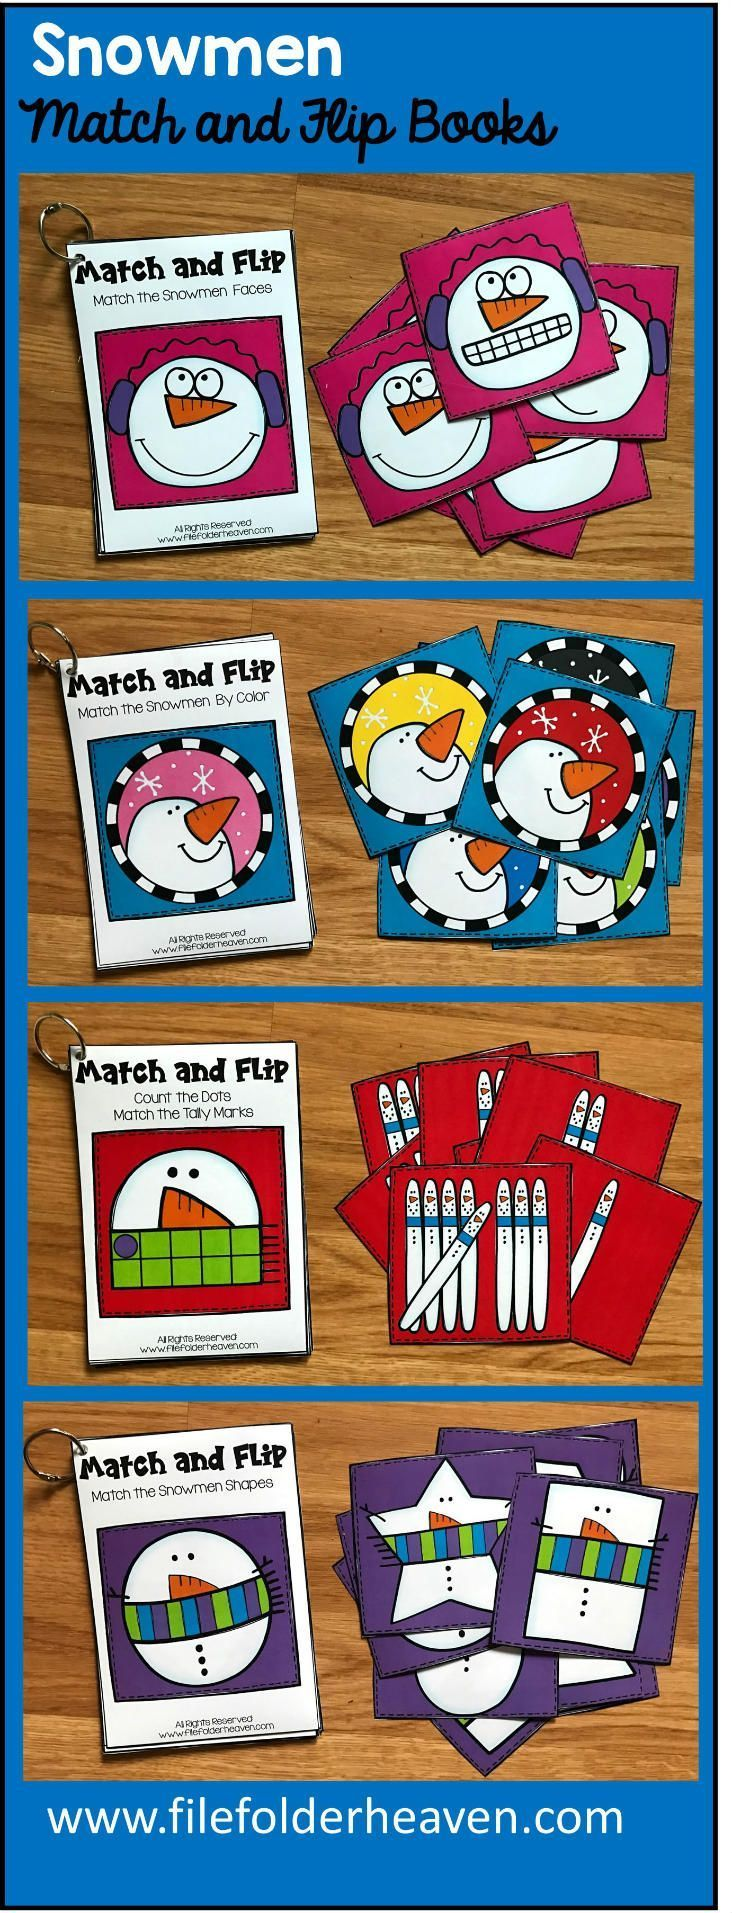 These Snowmen Match and Flip Books focus on basic matching skills. In these activities, students work on matching picture to picture (or by emotion/expression), matching by color, and matching by shape, and matching by counting.